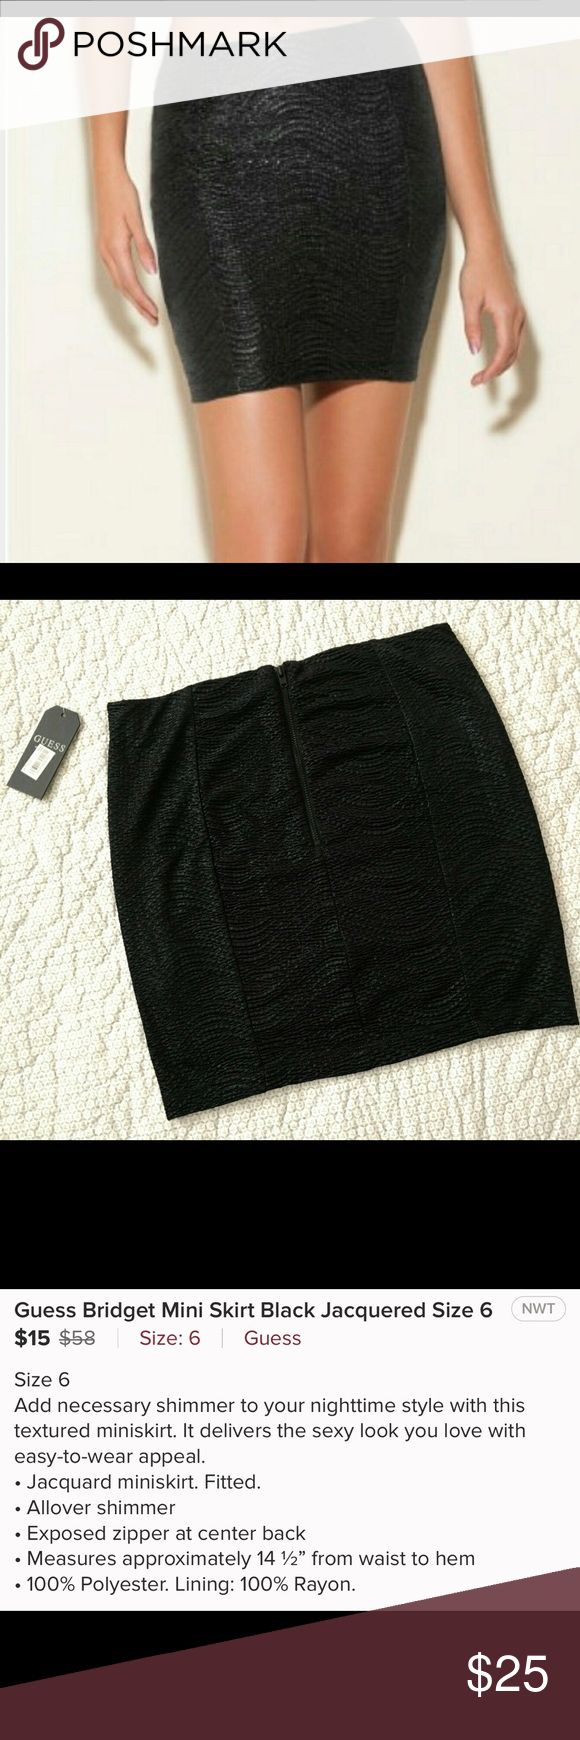 Black mini skirt New with tags! Purchased on Poshmark, it's just a little too short for me. Also i would say it fits more like a 4 than a 6 Guess Skirts Mini